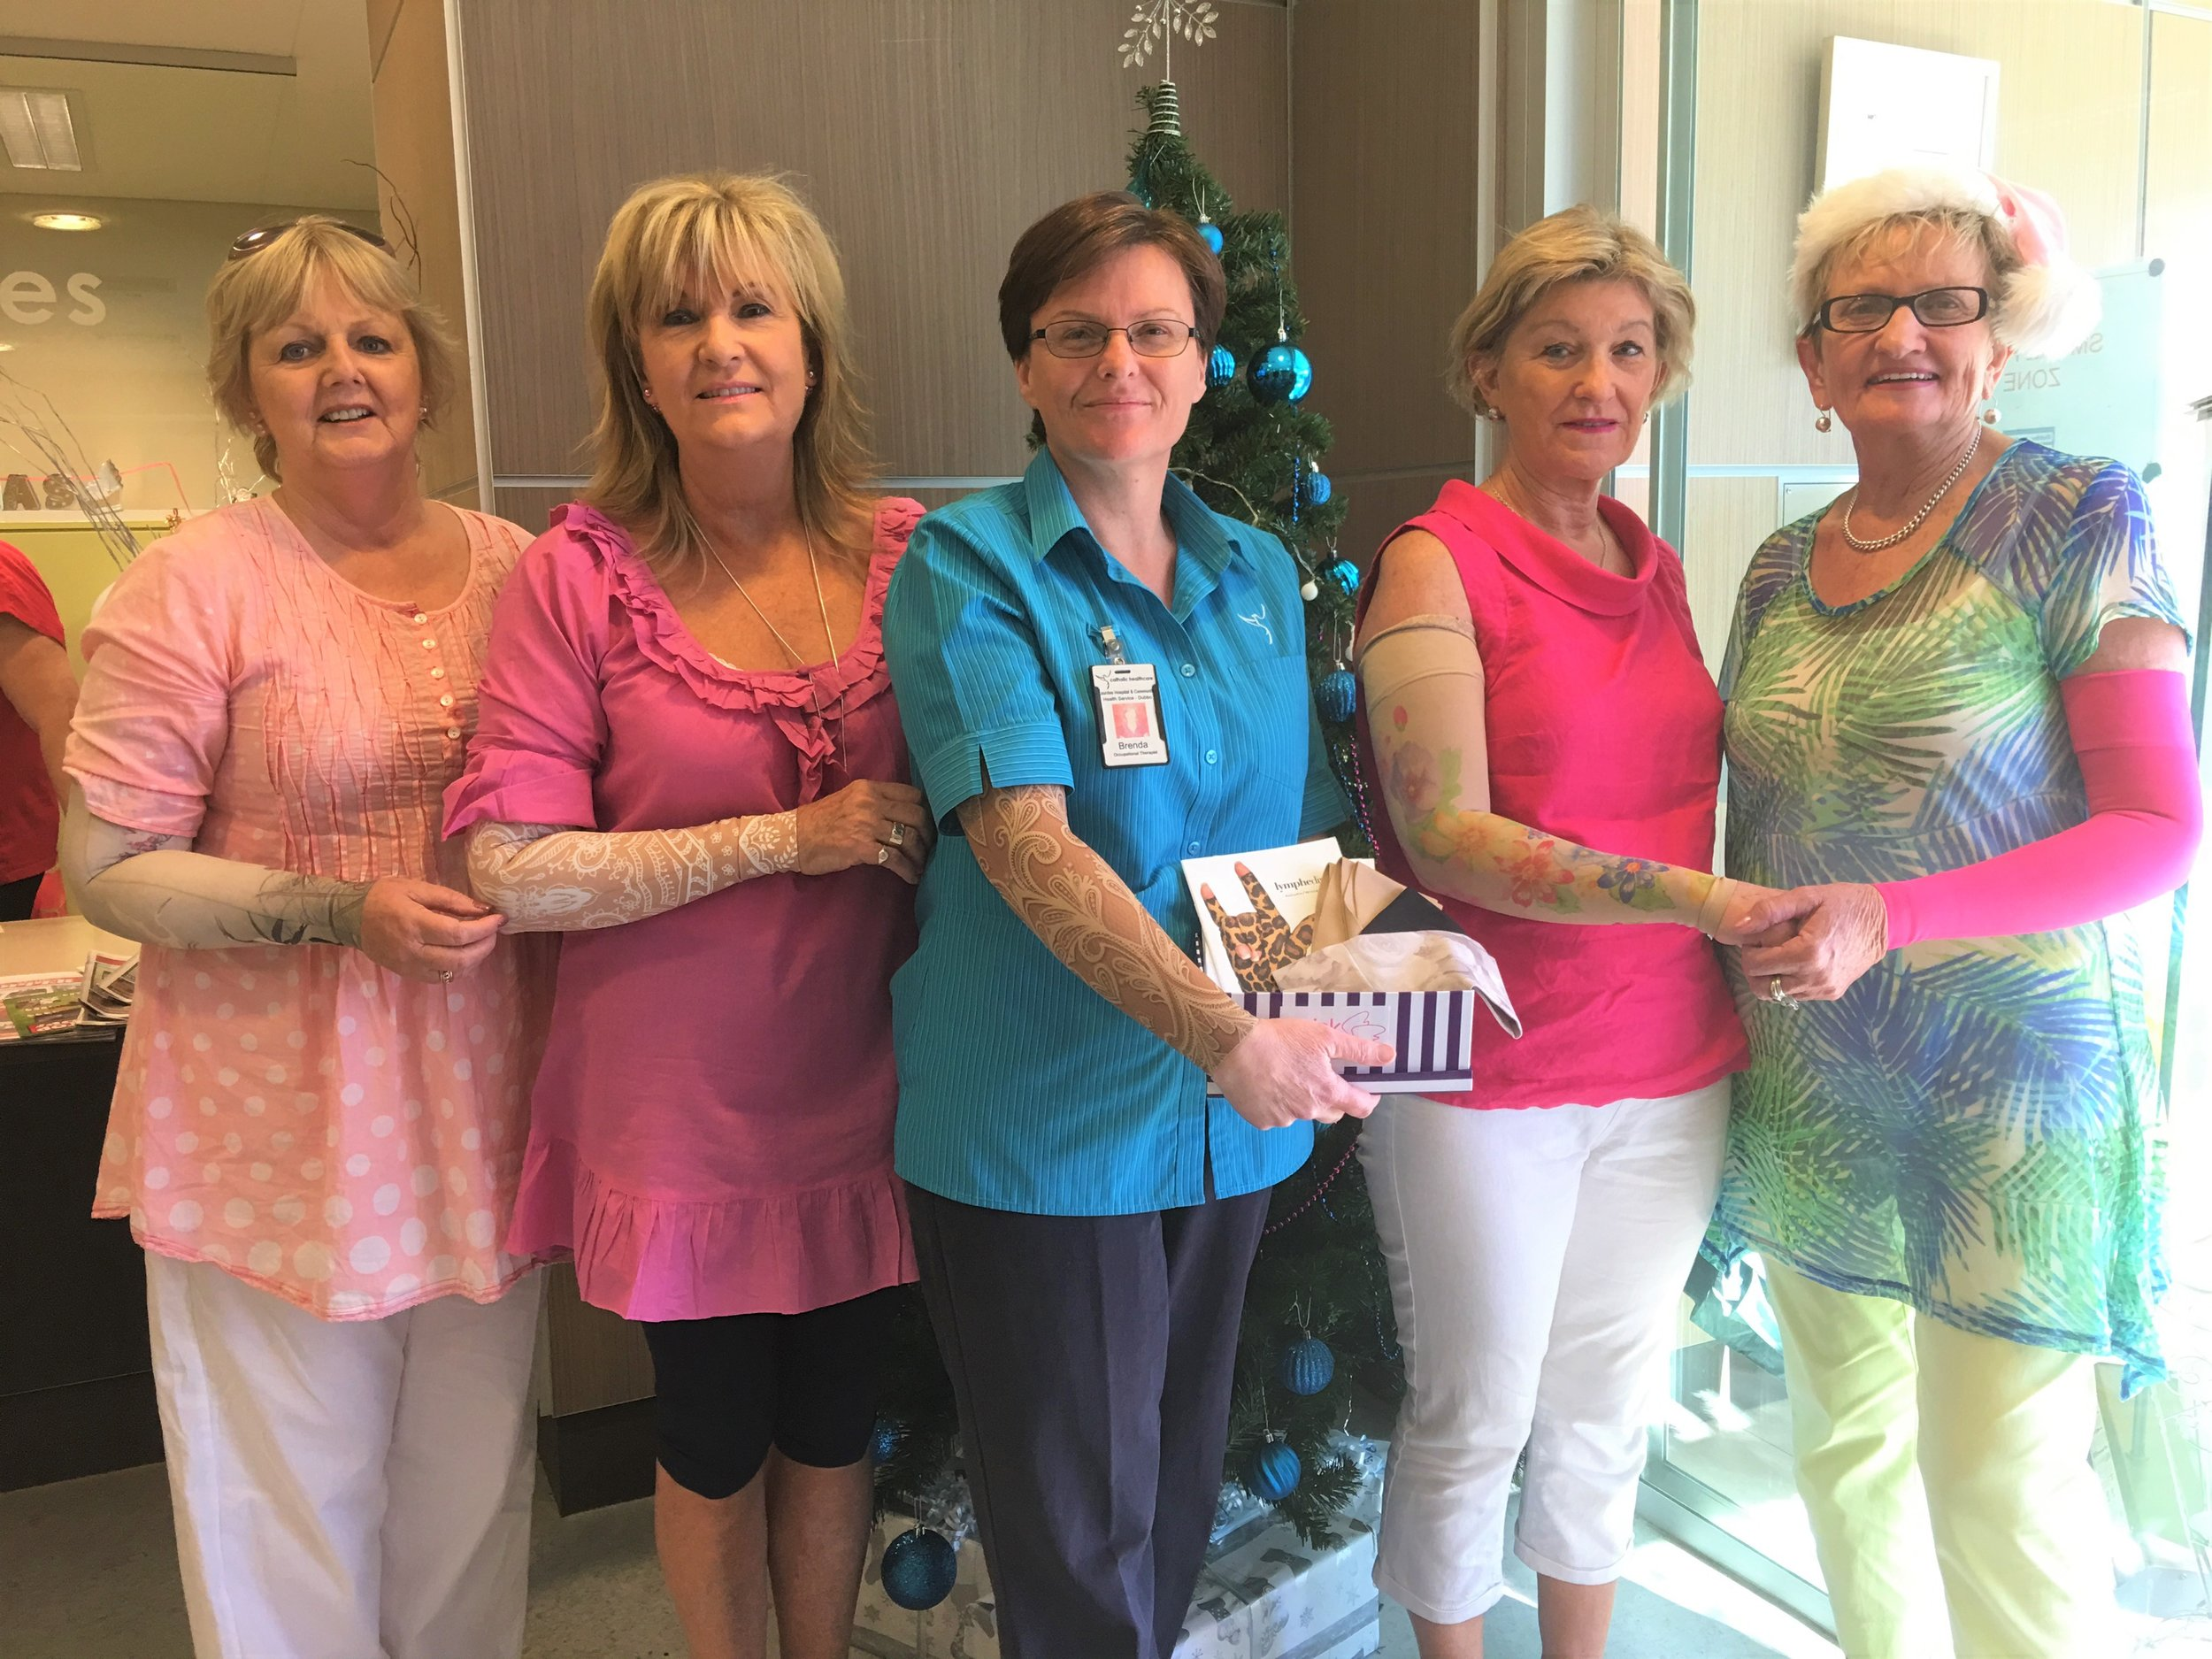 Pink Angels-Margo, Sue, Chris & Pam-donating compression sleeves for patients to Lymphedema Nurse, Brenda, at Lourdes Hospital.